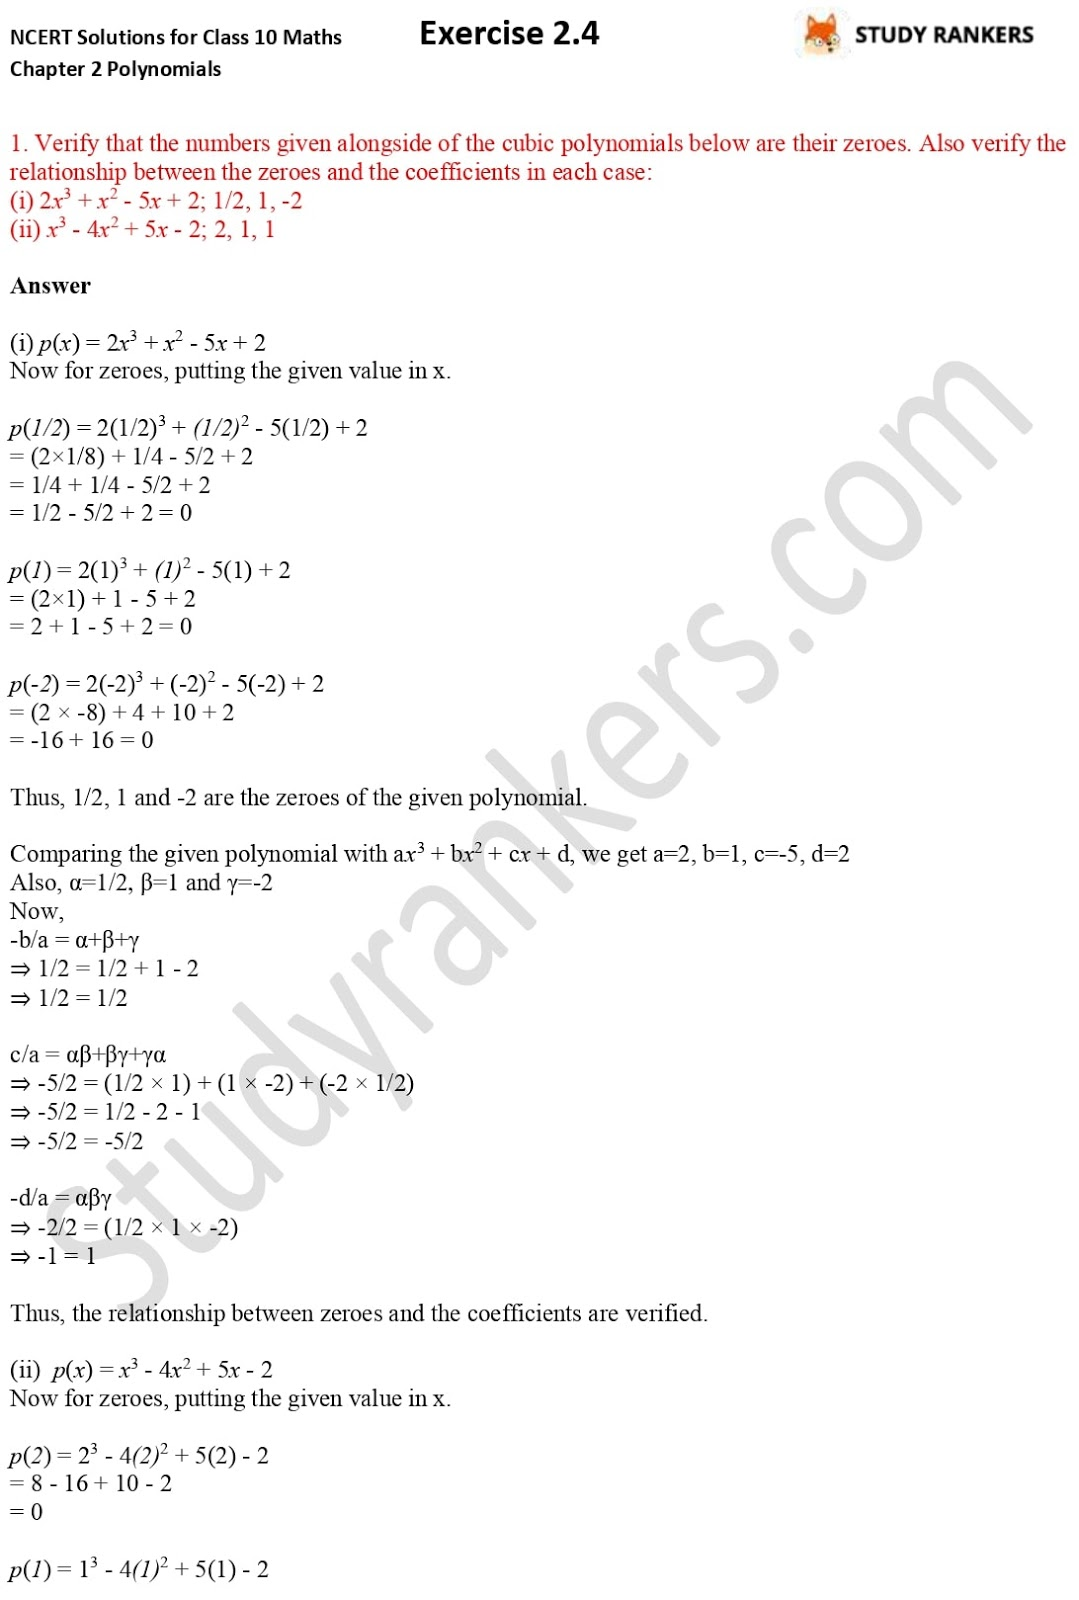 NCERT Solutions for Class 10 Maths Chapter 2 Polynomials Exercise 2.4 1